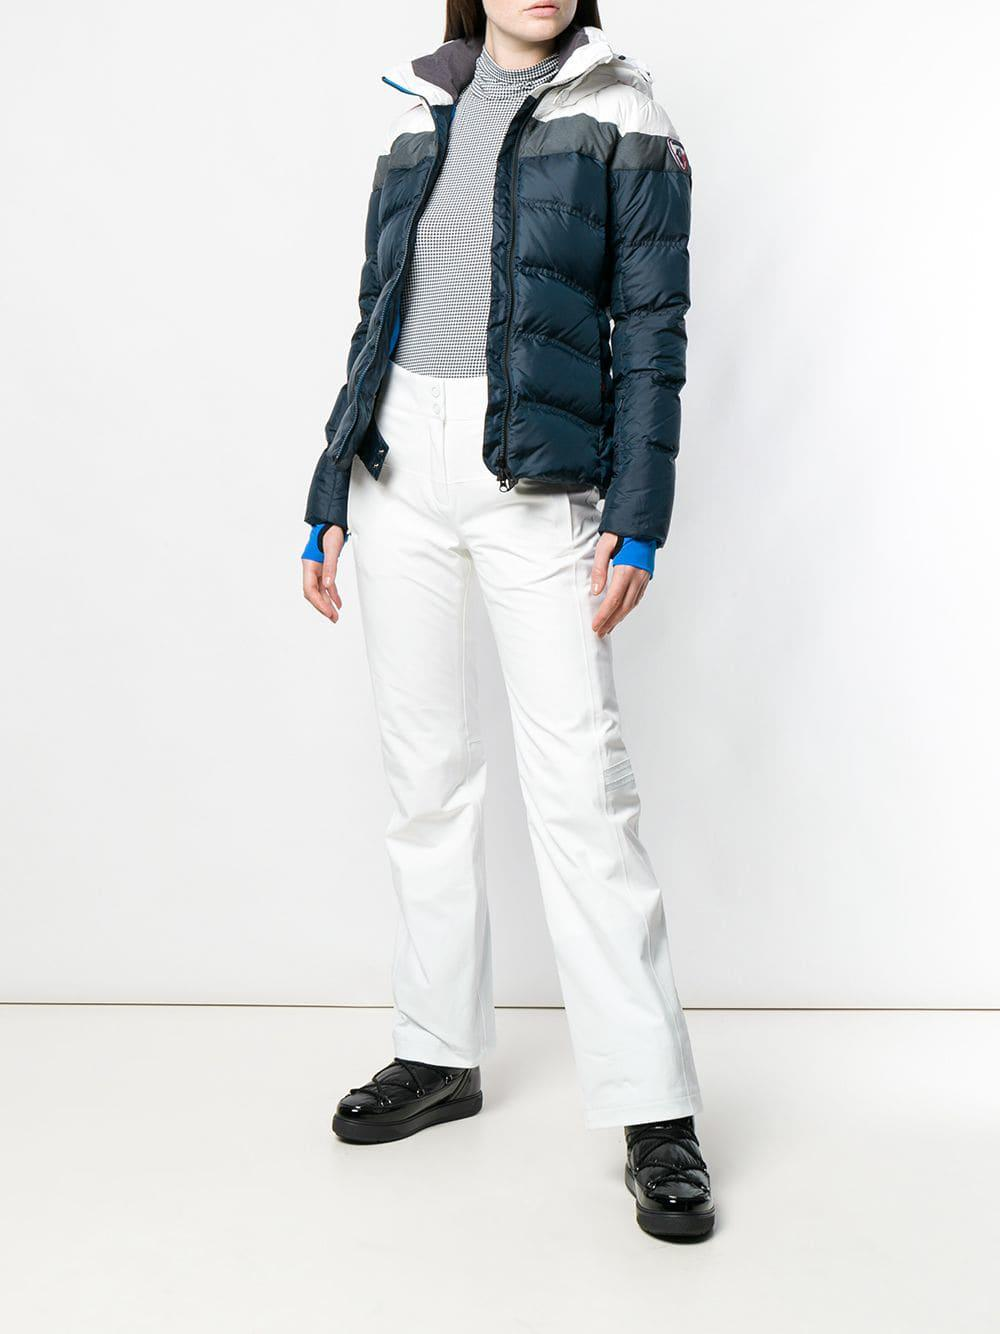 870fe2f9bad ... Down Jacket - Lyst · Visit Farfetch. Tap to visit site